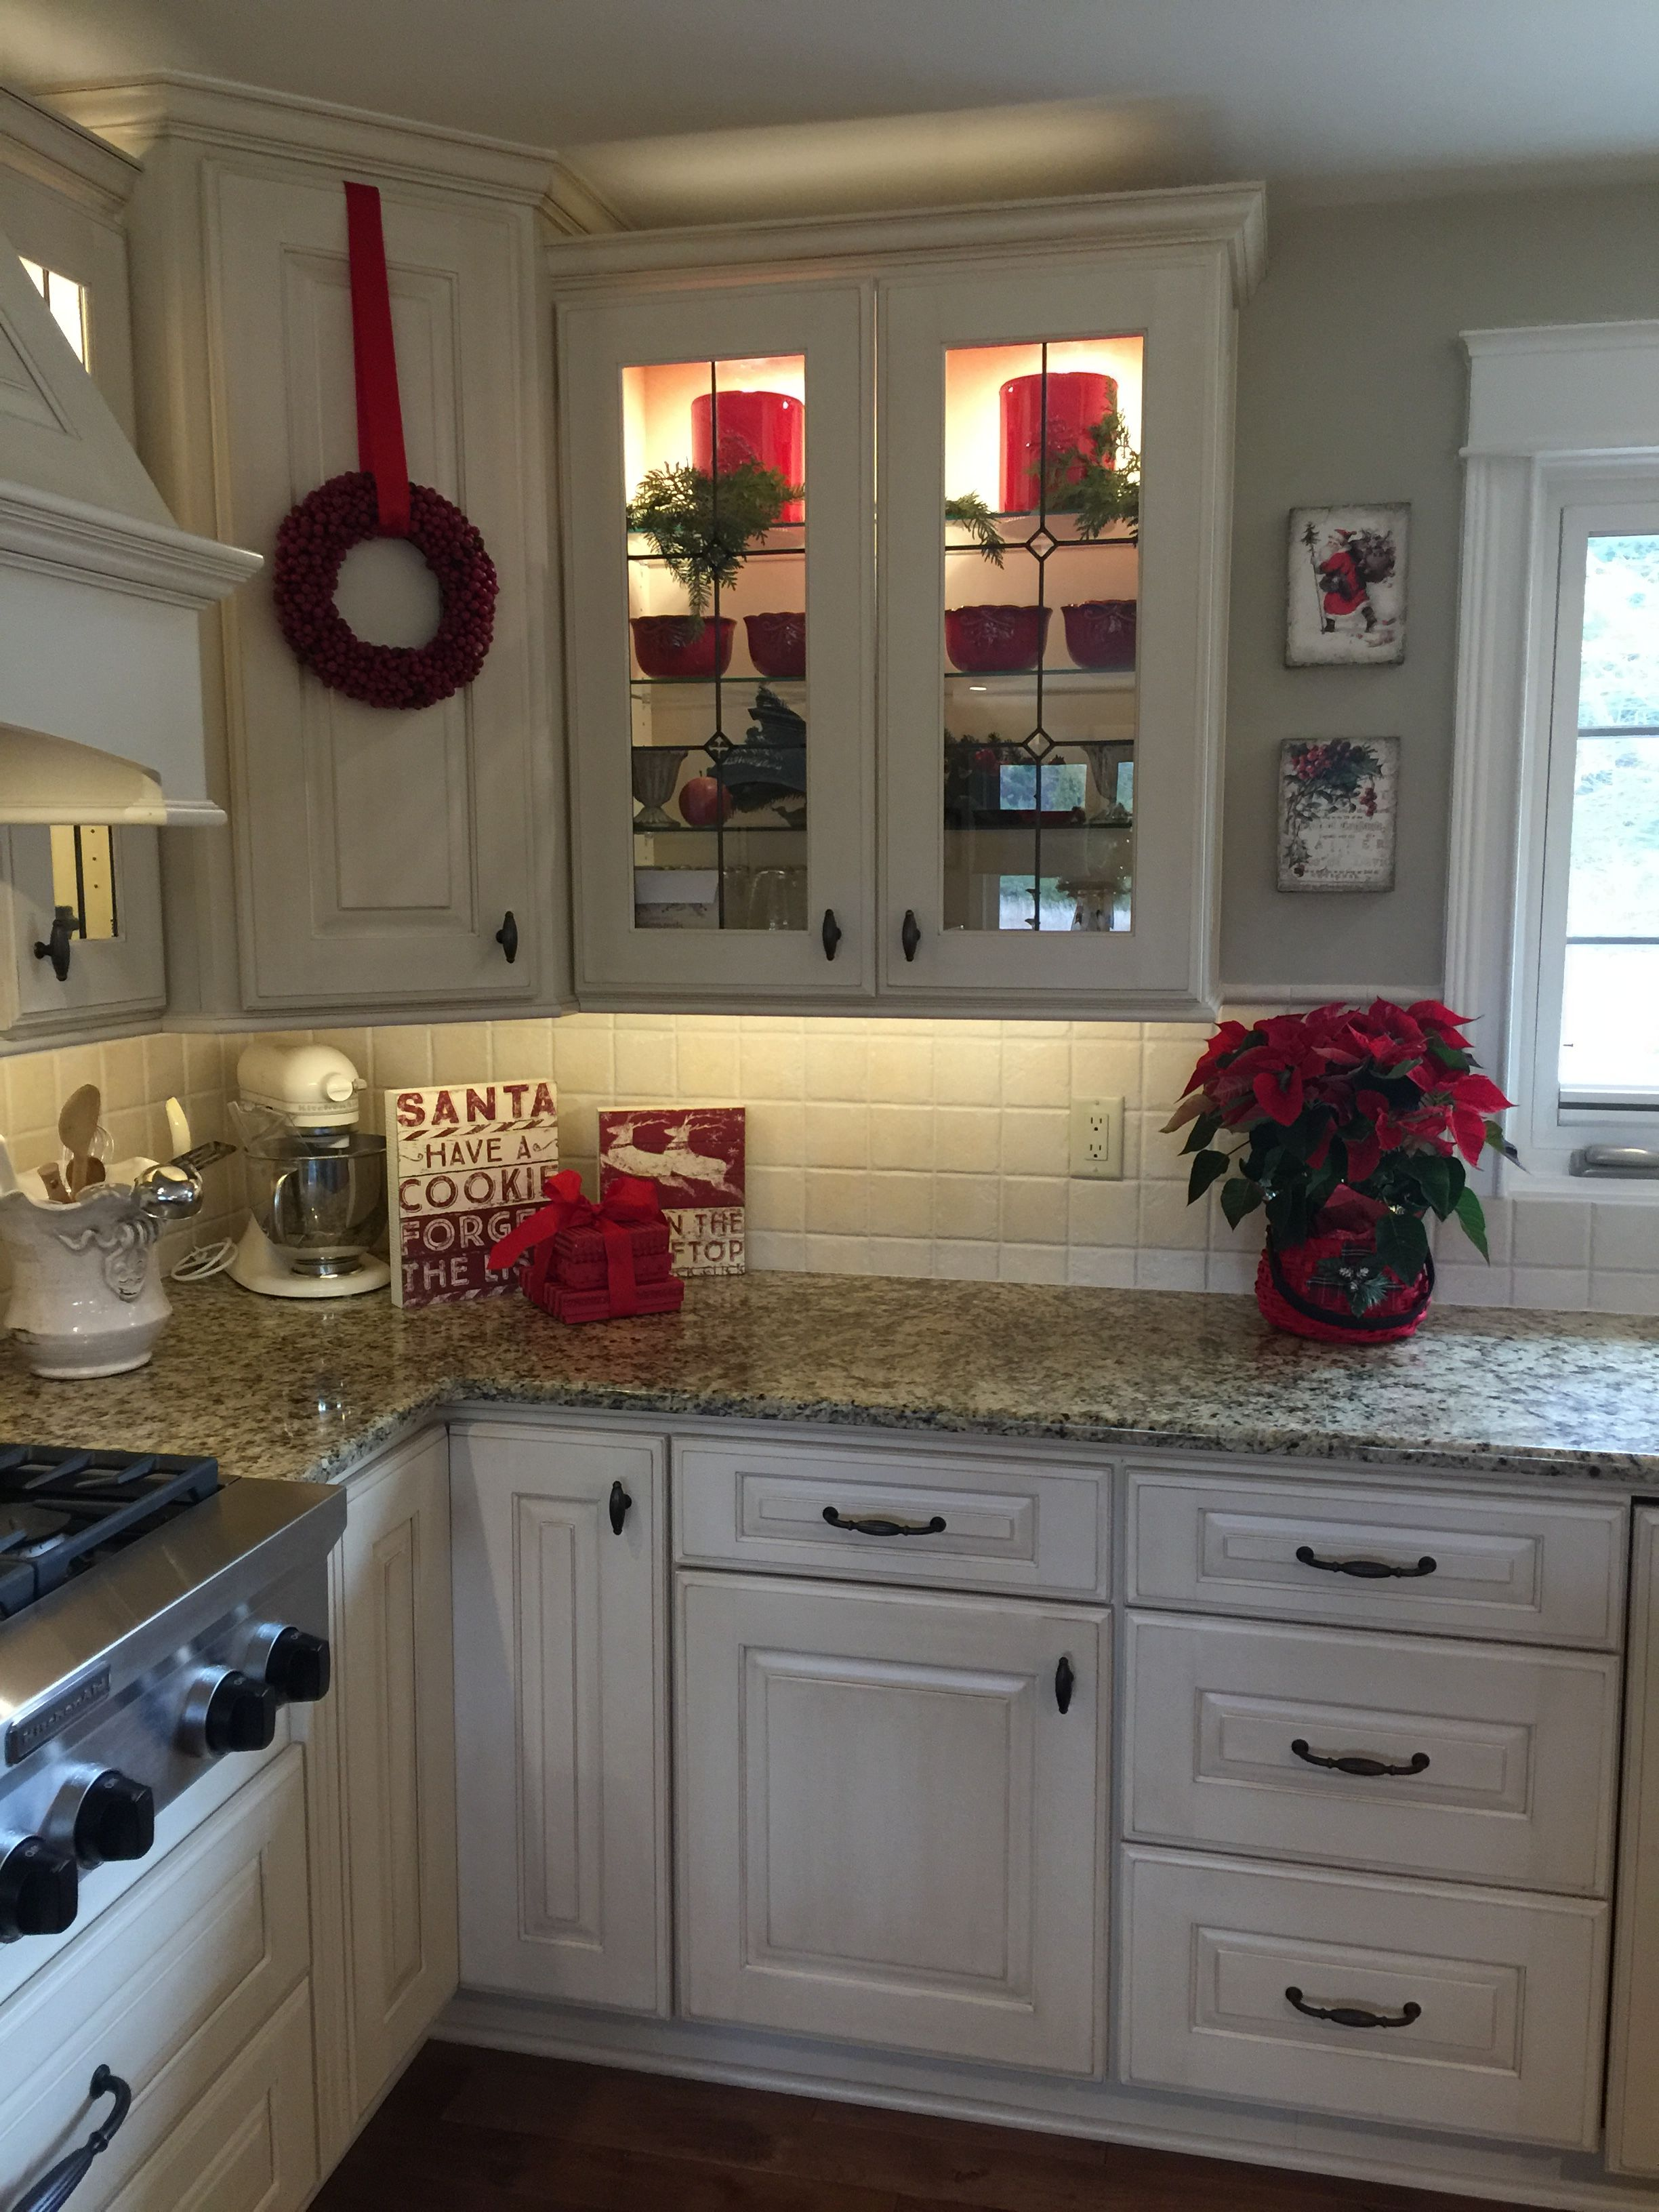 red christmas kitchen decor kitchen design decor christmas kitchen on kitchen cabinets xmas decor id=65839